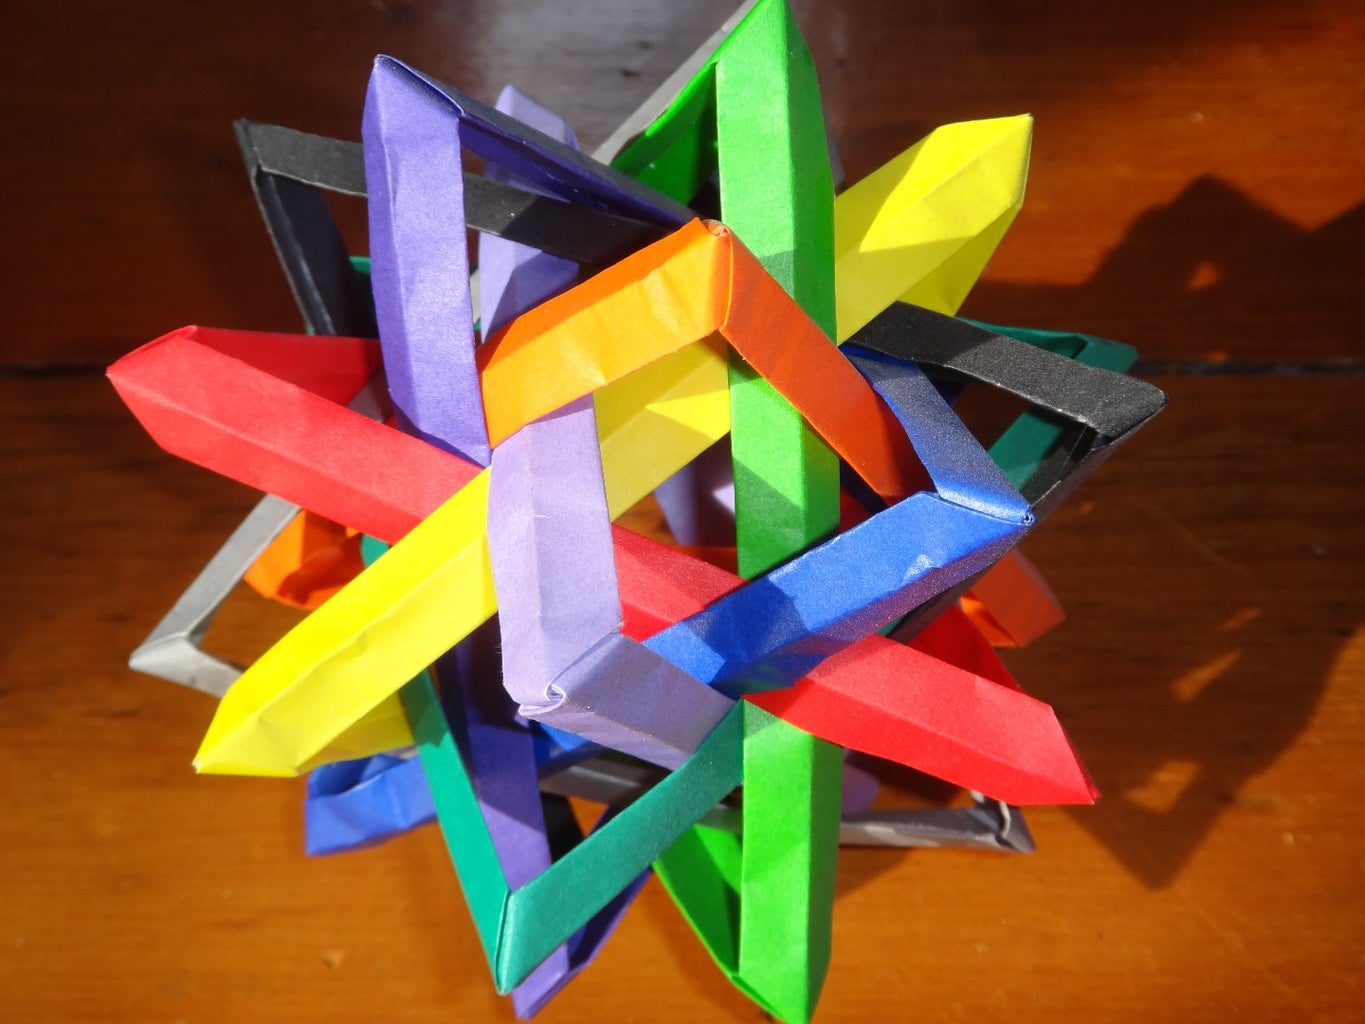 The Math and Art in Origami - How to Make Geometric Wireframes